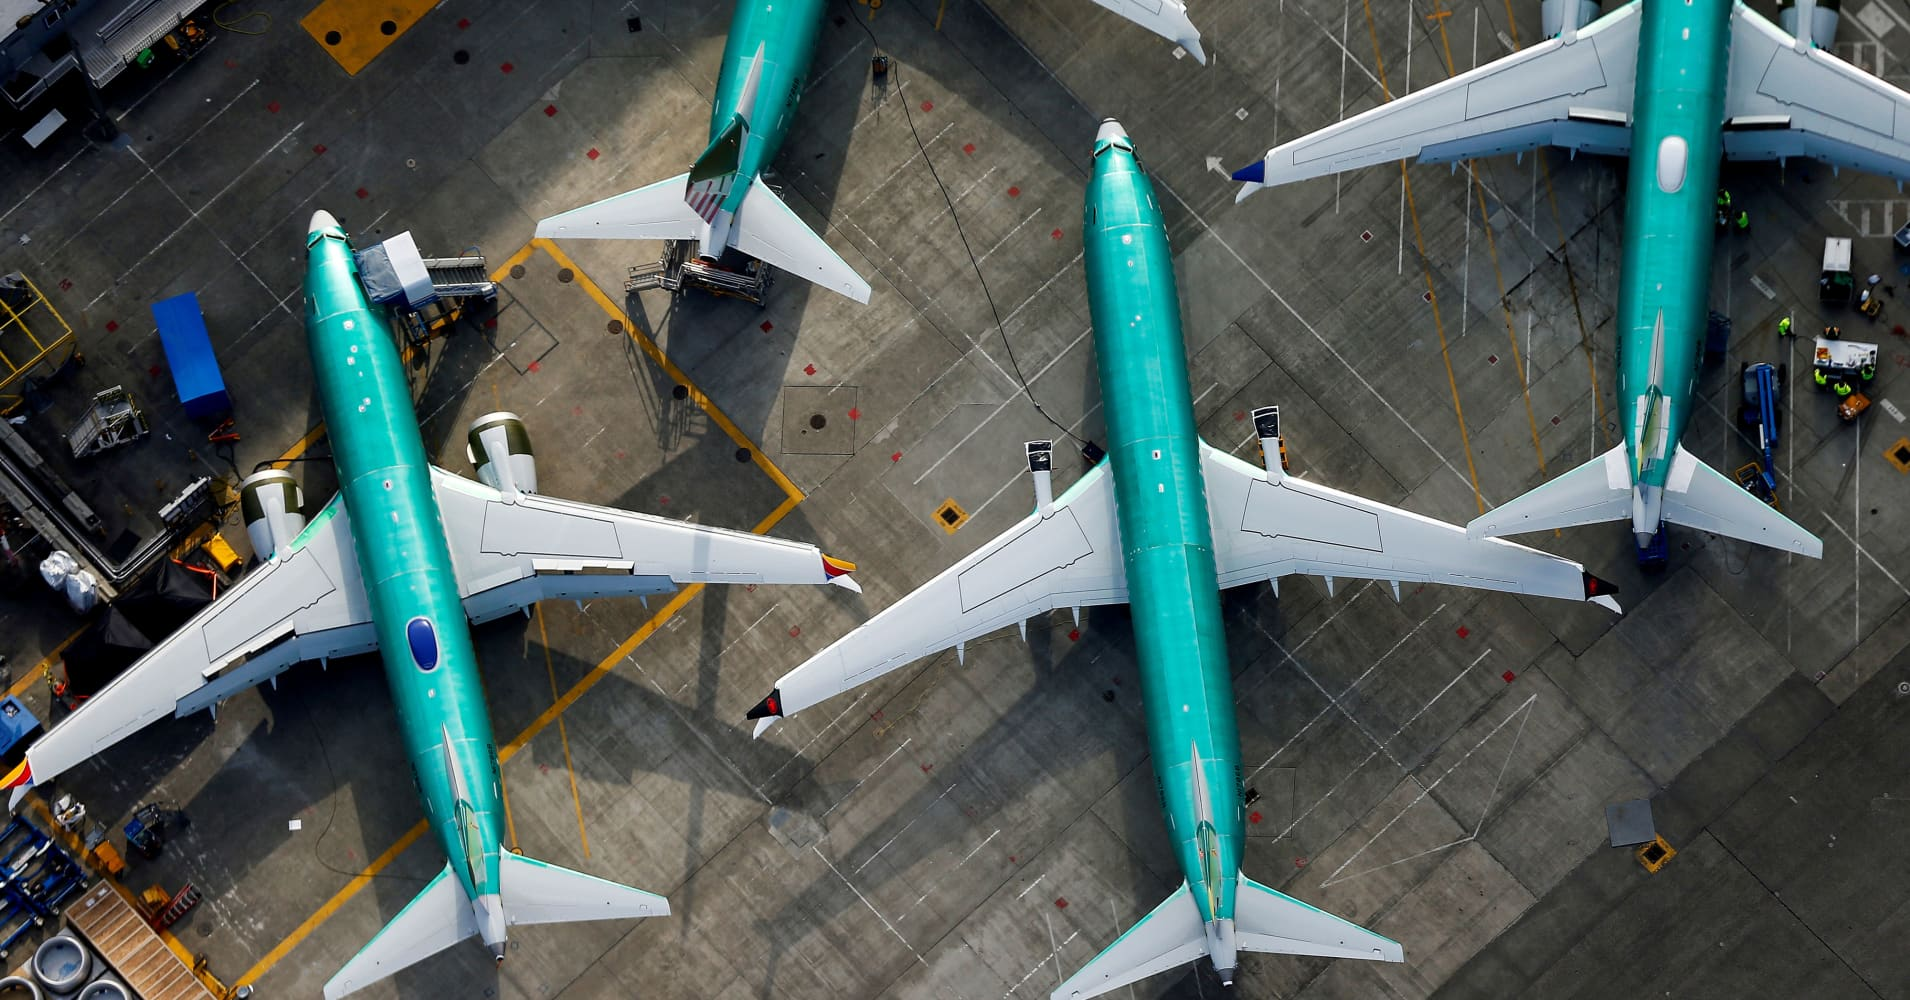 Boeing to cut 737 Max production beginning in mid-April